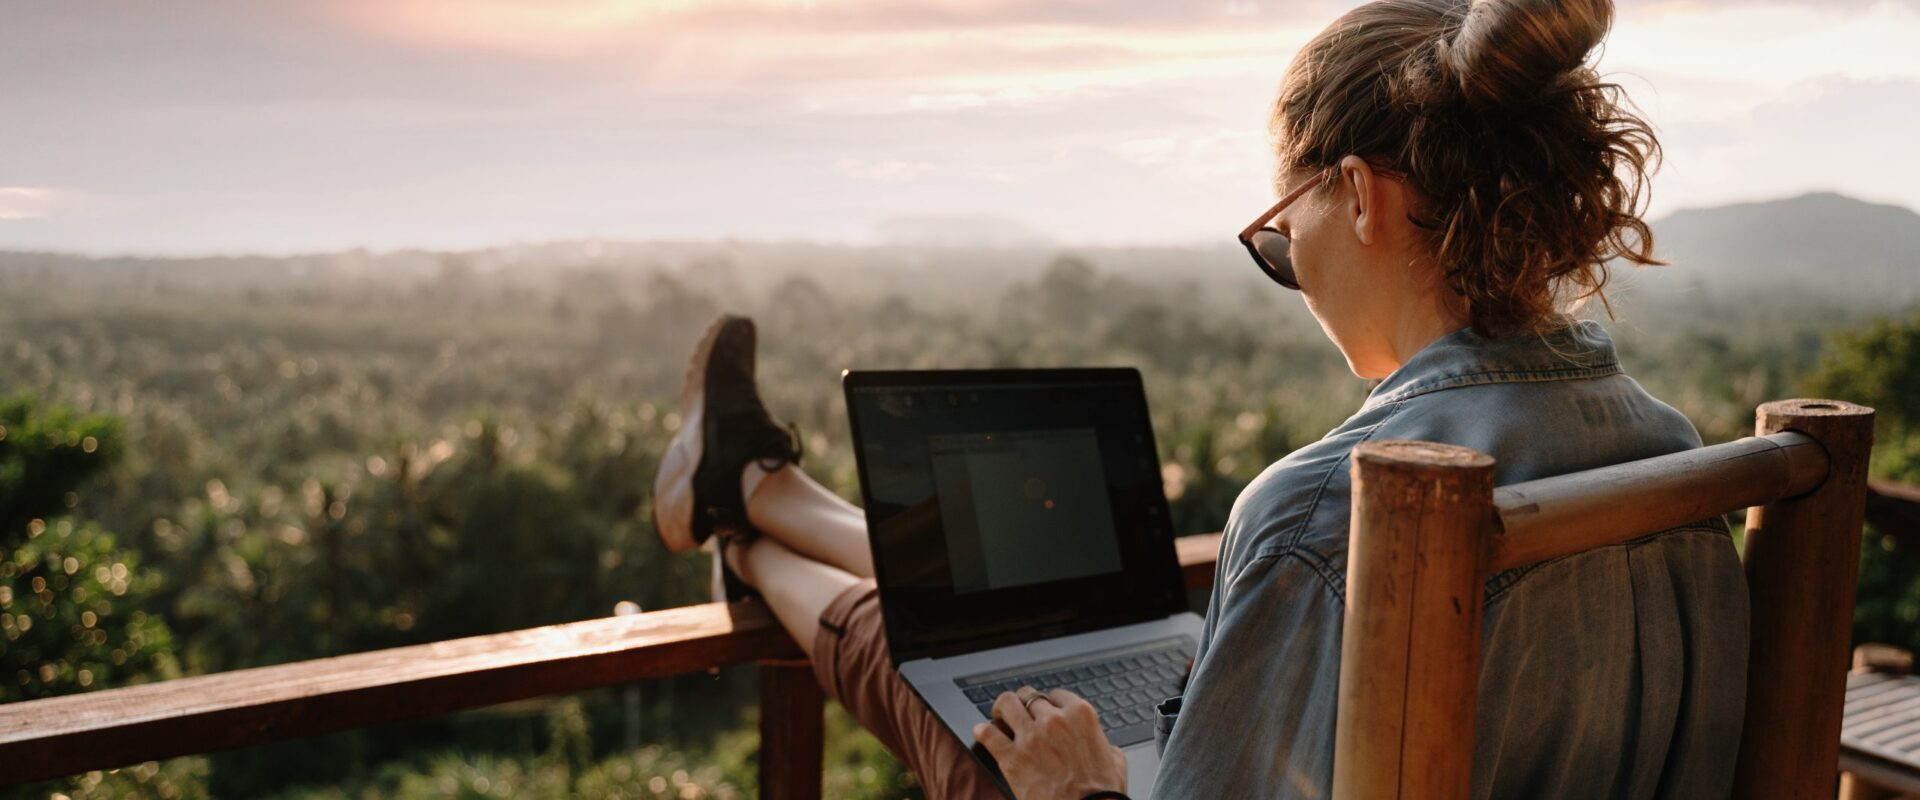 Young business woman working at the computer in cafe on the rock. Young girl downshifter working at a laptop at sunset or sunrise on the top of the mountain to the sea, working day.